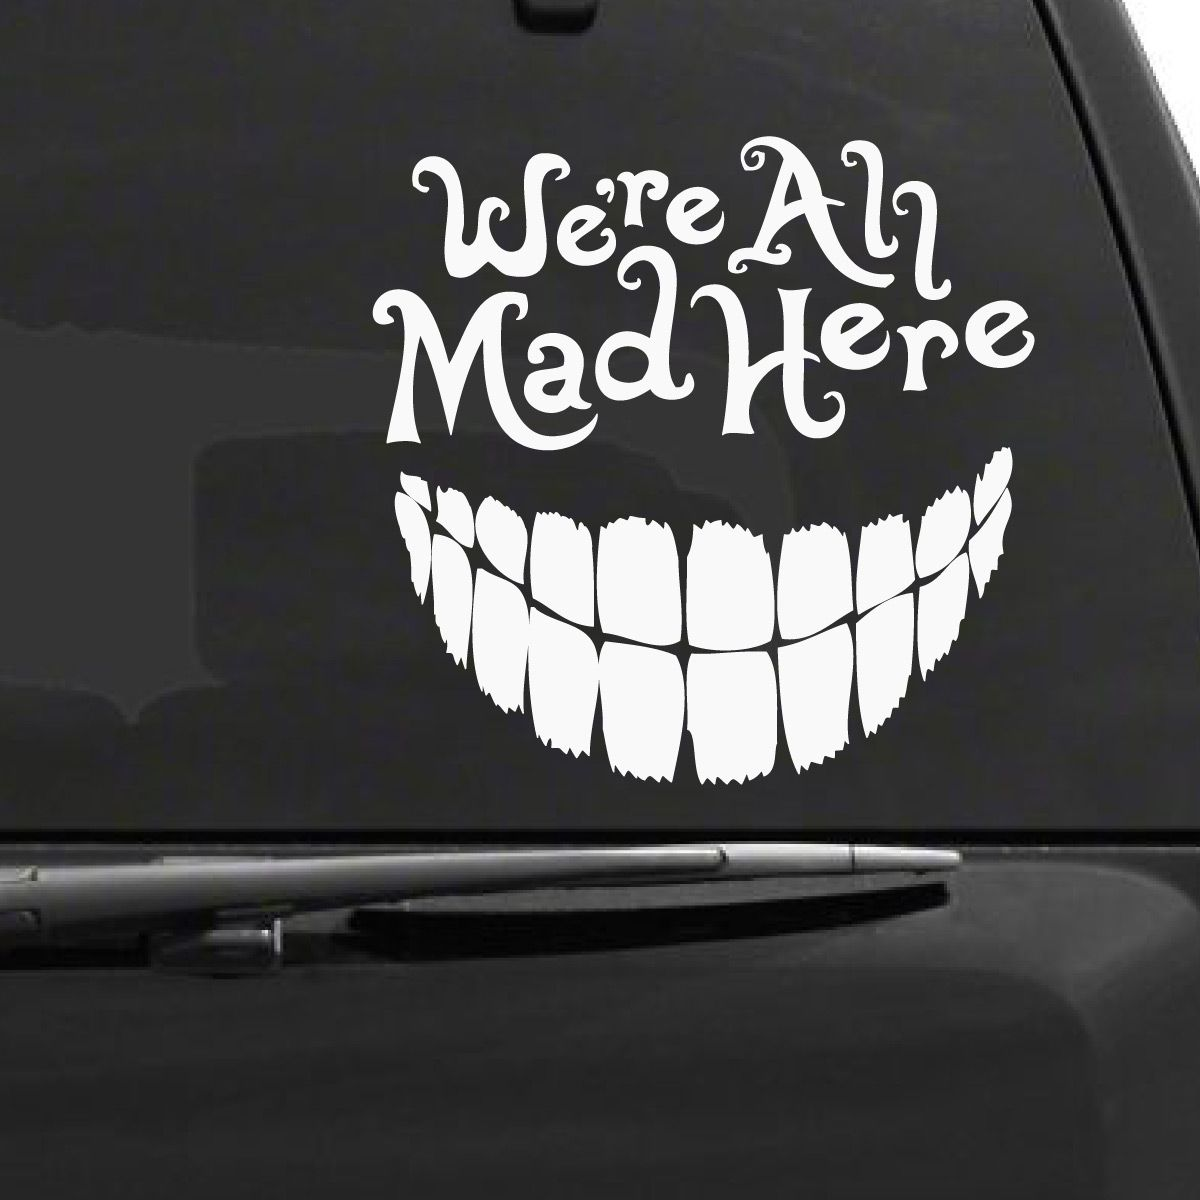 car decal ideas  Step by step ideas to apply car decal. Video and instructions to ...